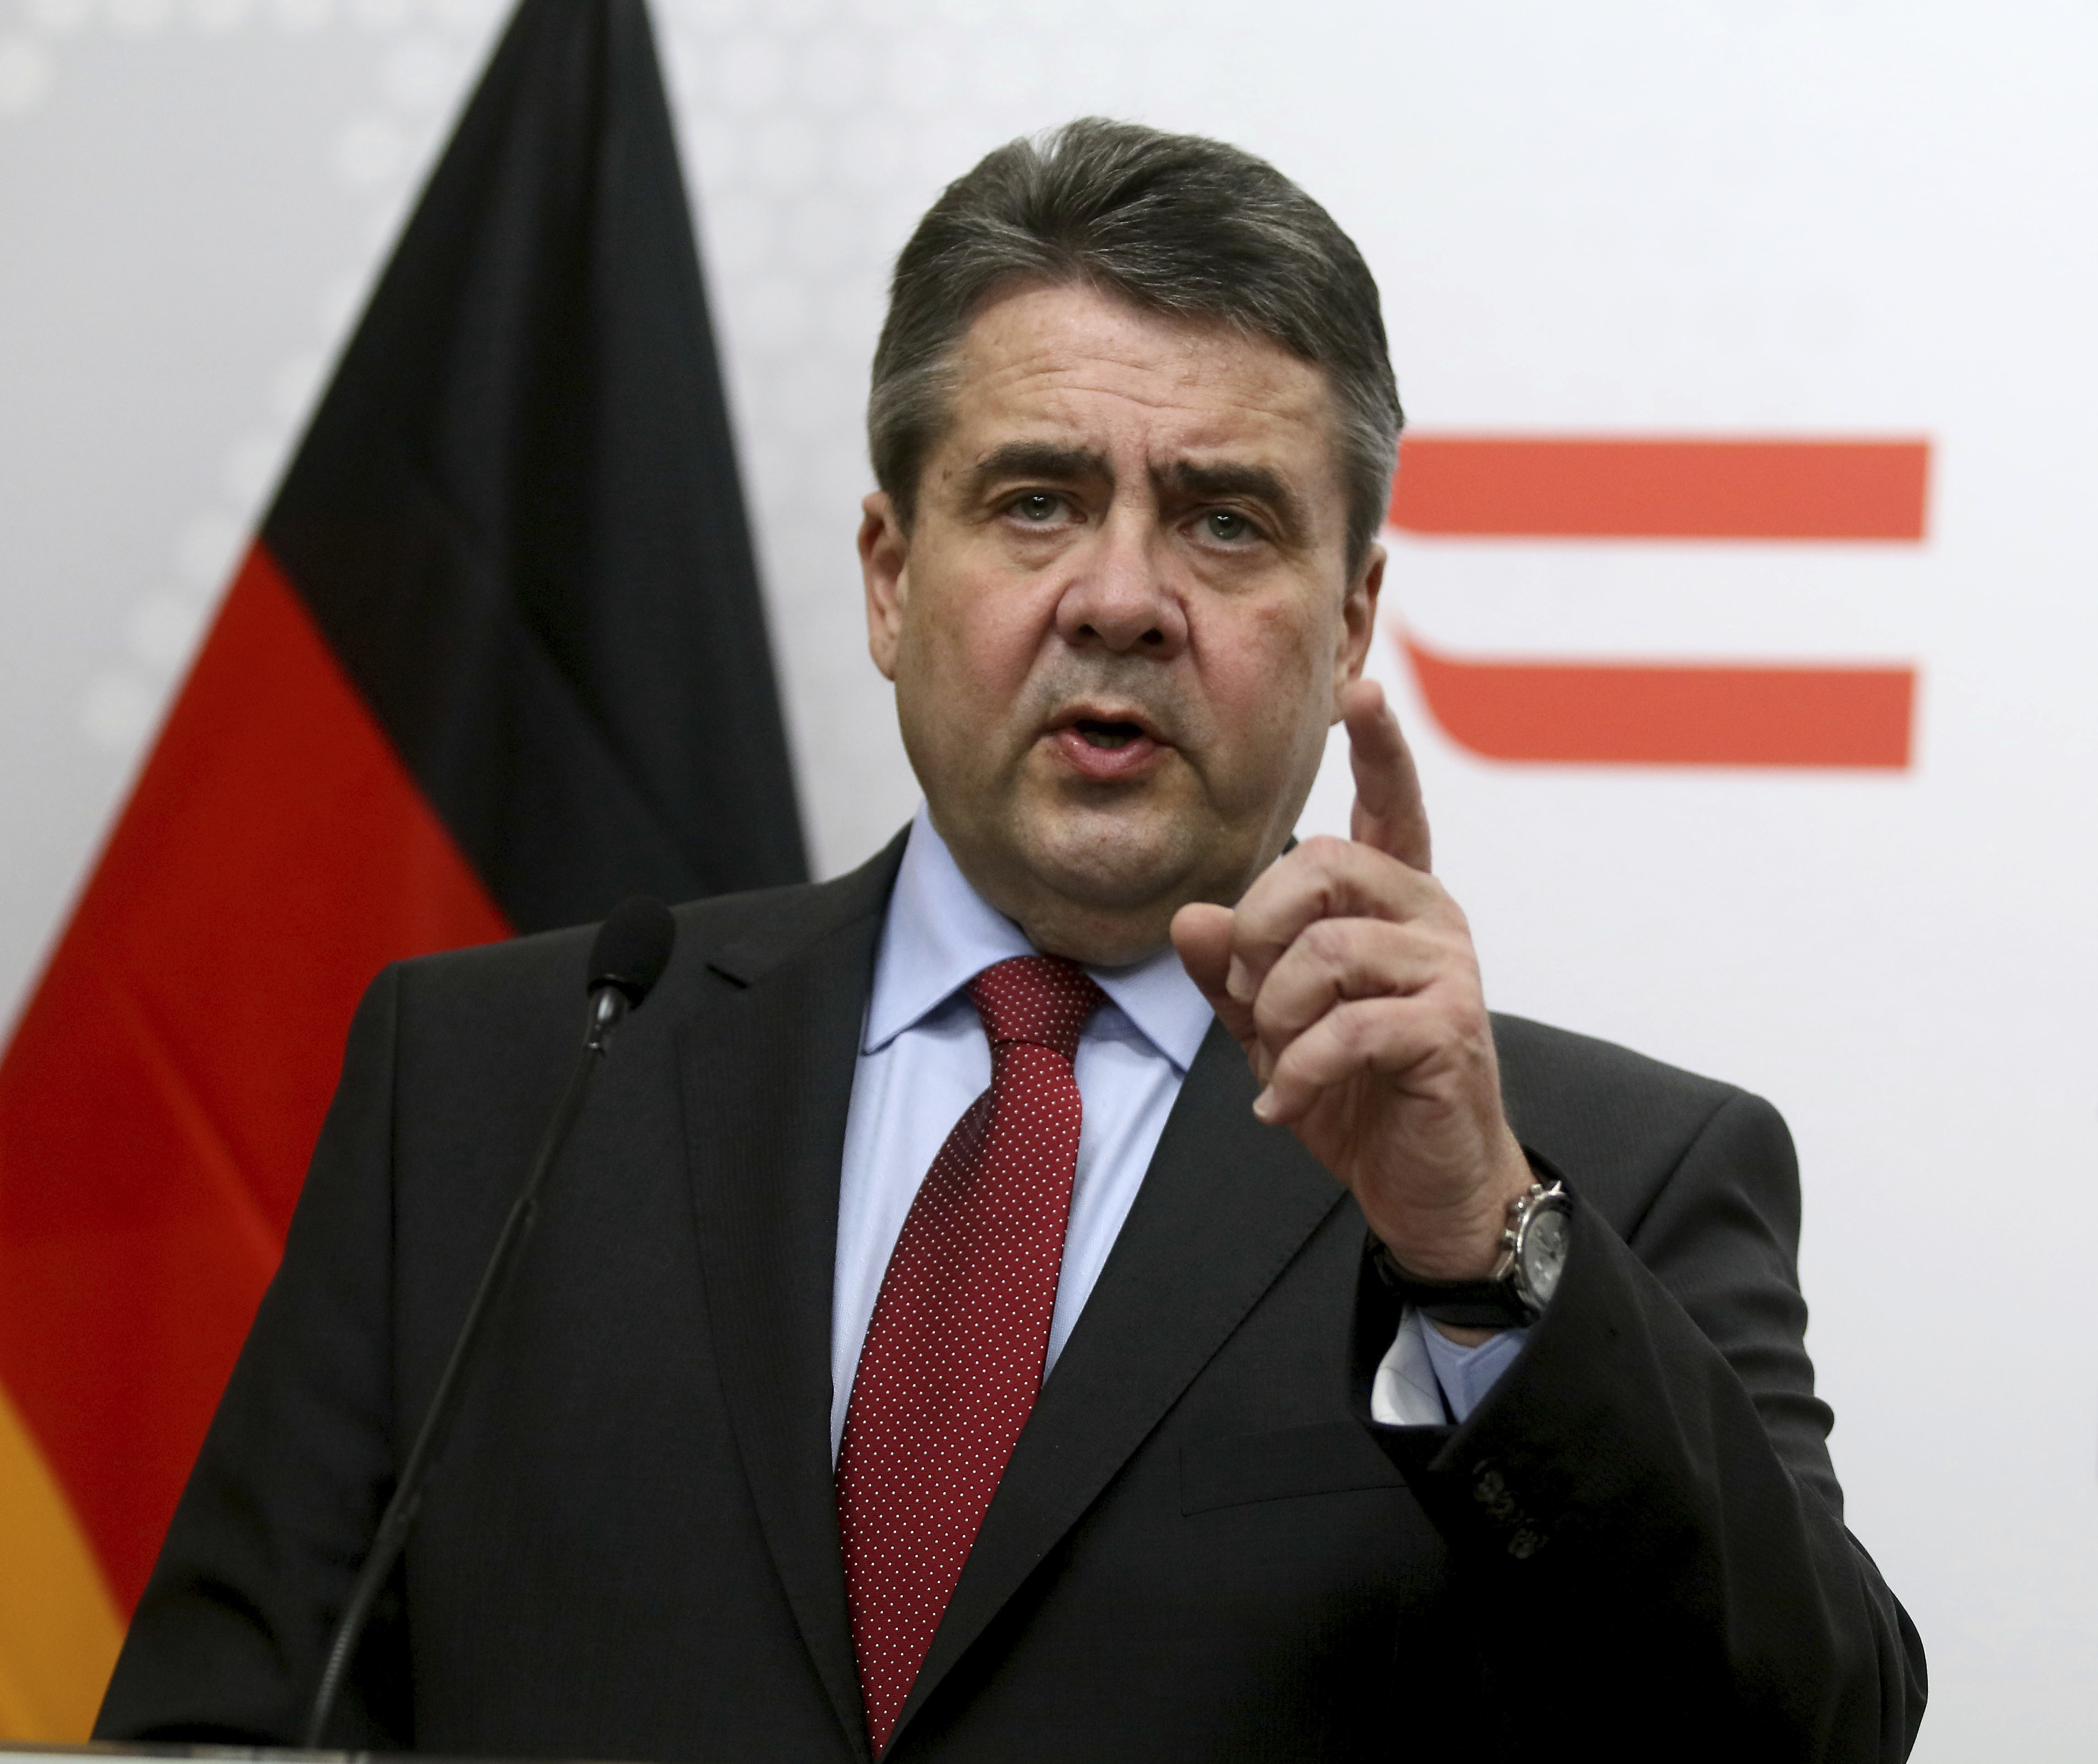 German Minister of Foreign Affairs Sigmar Gabriel addresses the media after a meeting with Austrian Foreign Minister Sebastian Kurz at the foreign ministry in Vienna, Austria on Feb. 27, 2017. (AP Photo/Ronald Zak)